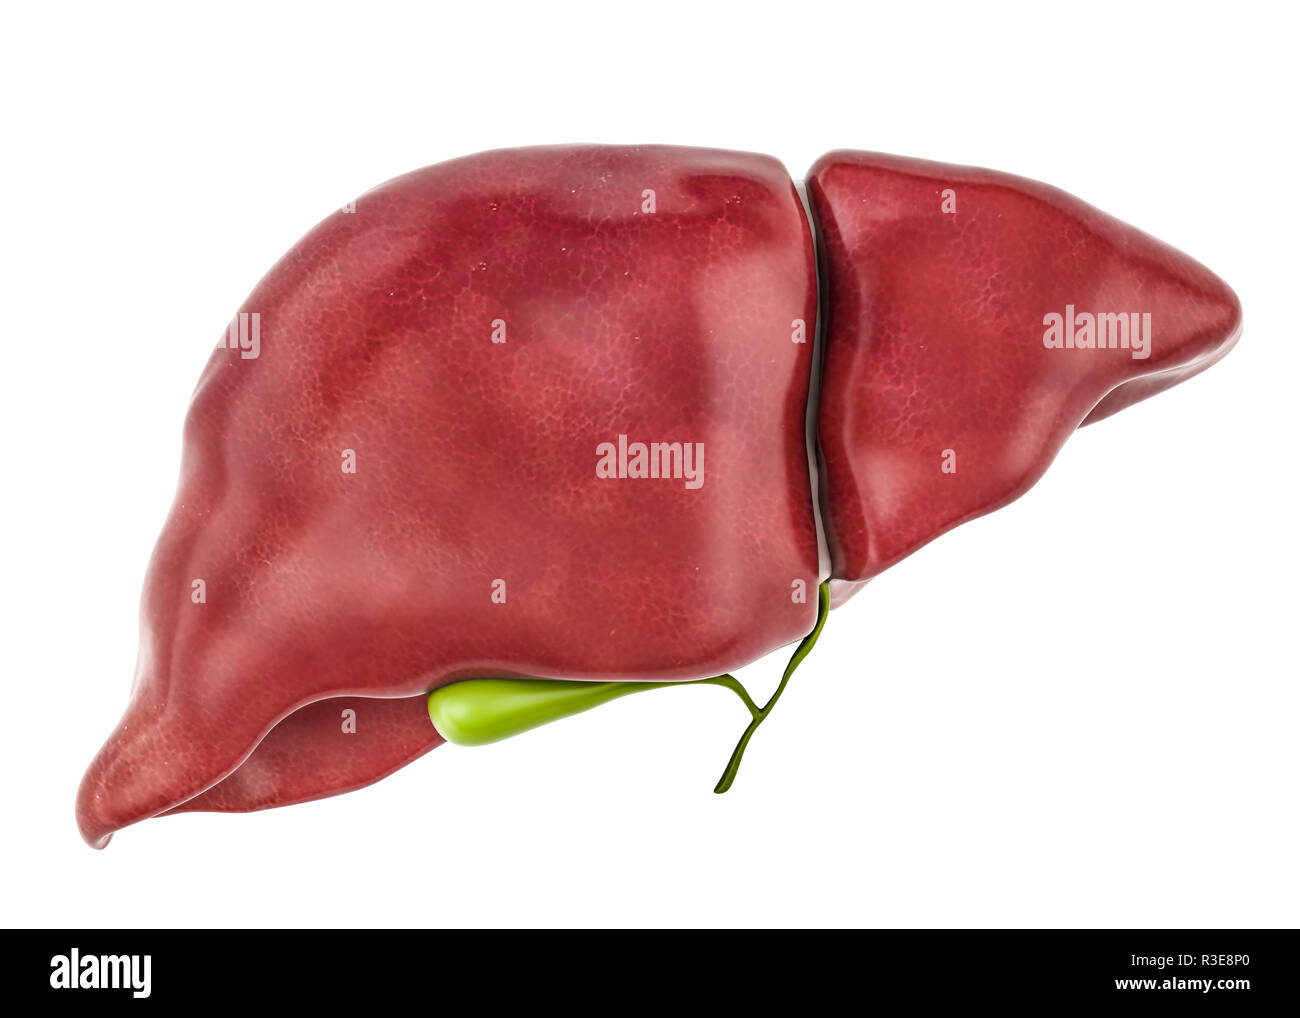 Healthy human liver with gallbladder, 3D rendering isolated on white background Stock Photo